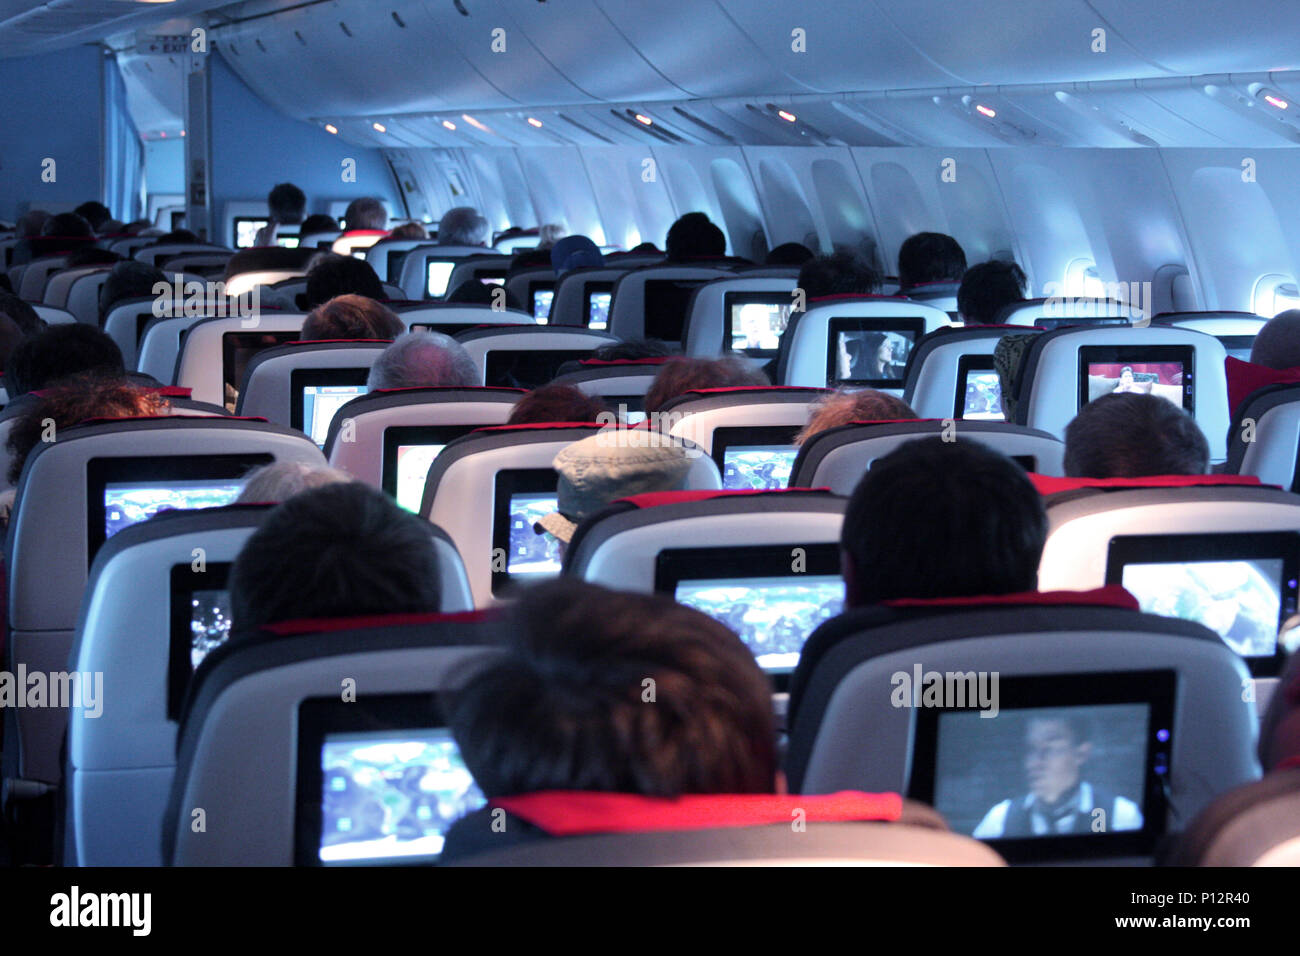 Interior of airplane during night flight - Stock Image